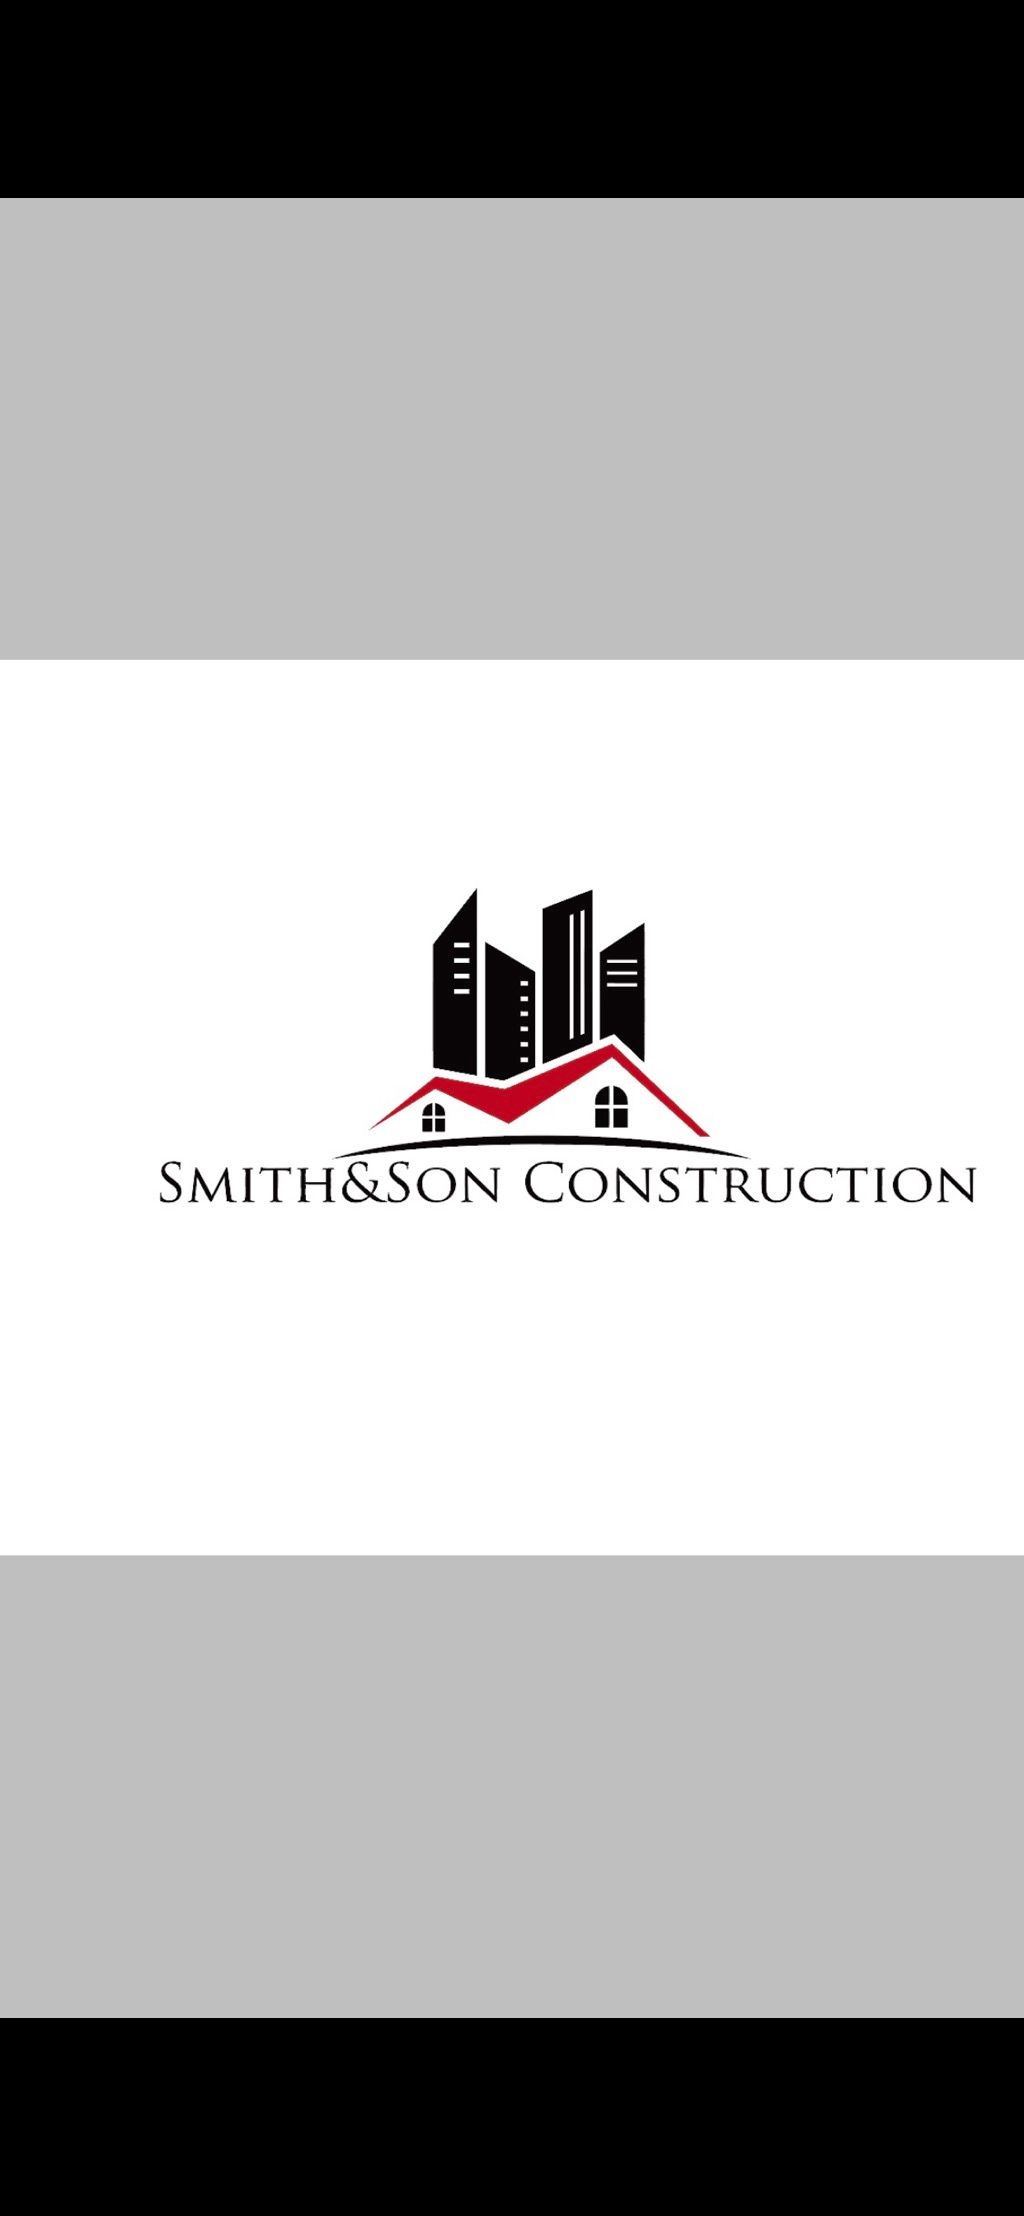 Smith and son construction